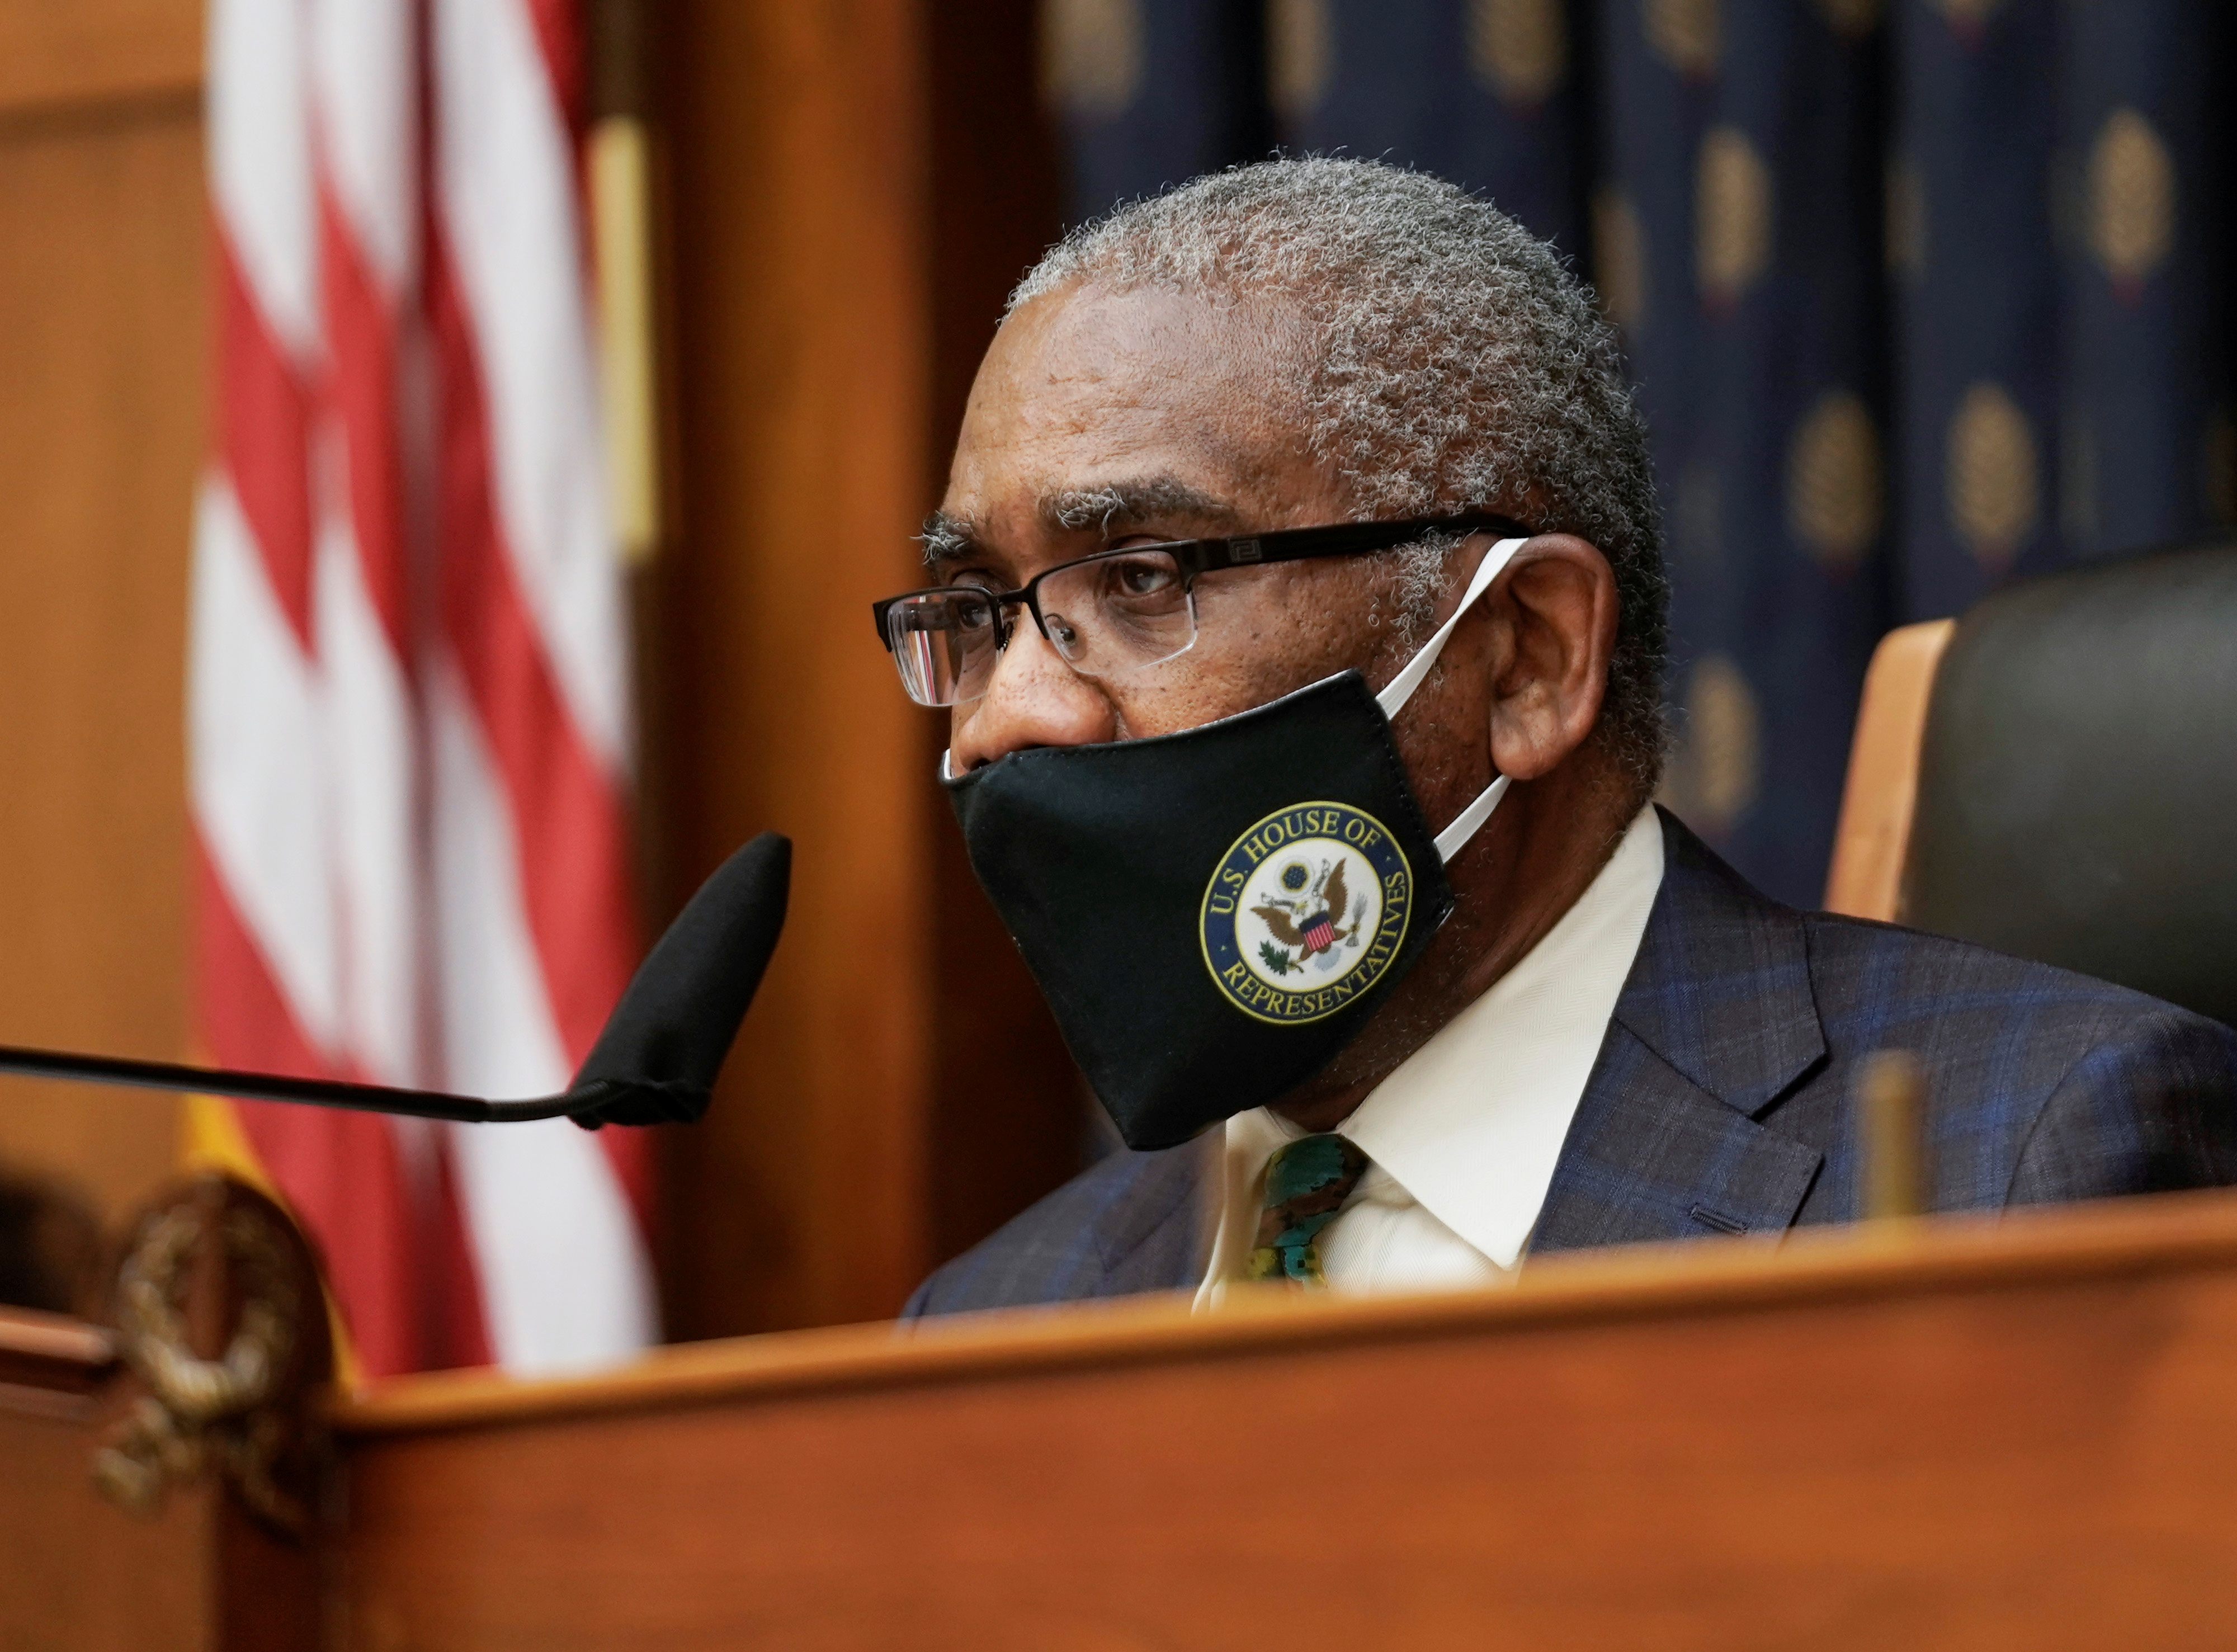 Chairman Rep. Gregory W. Meeks wears a face mask as U.S. Secretary of State Antony Blinken testifies before the House Committee on Foreign Affairs on the Biden Administration's Priorities for U.S. Foreign Policy on Capitol Hill in Washington, DC, U.S., March 10, 2021. Ken Cedeno/Pool via REUTERS